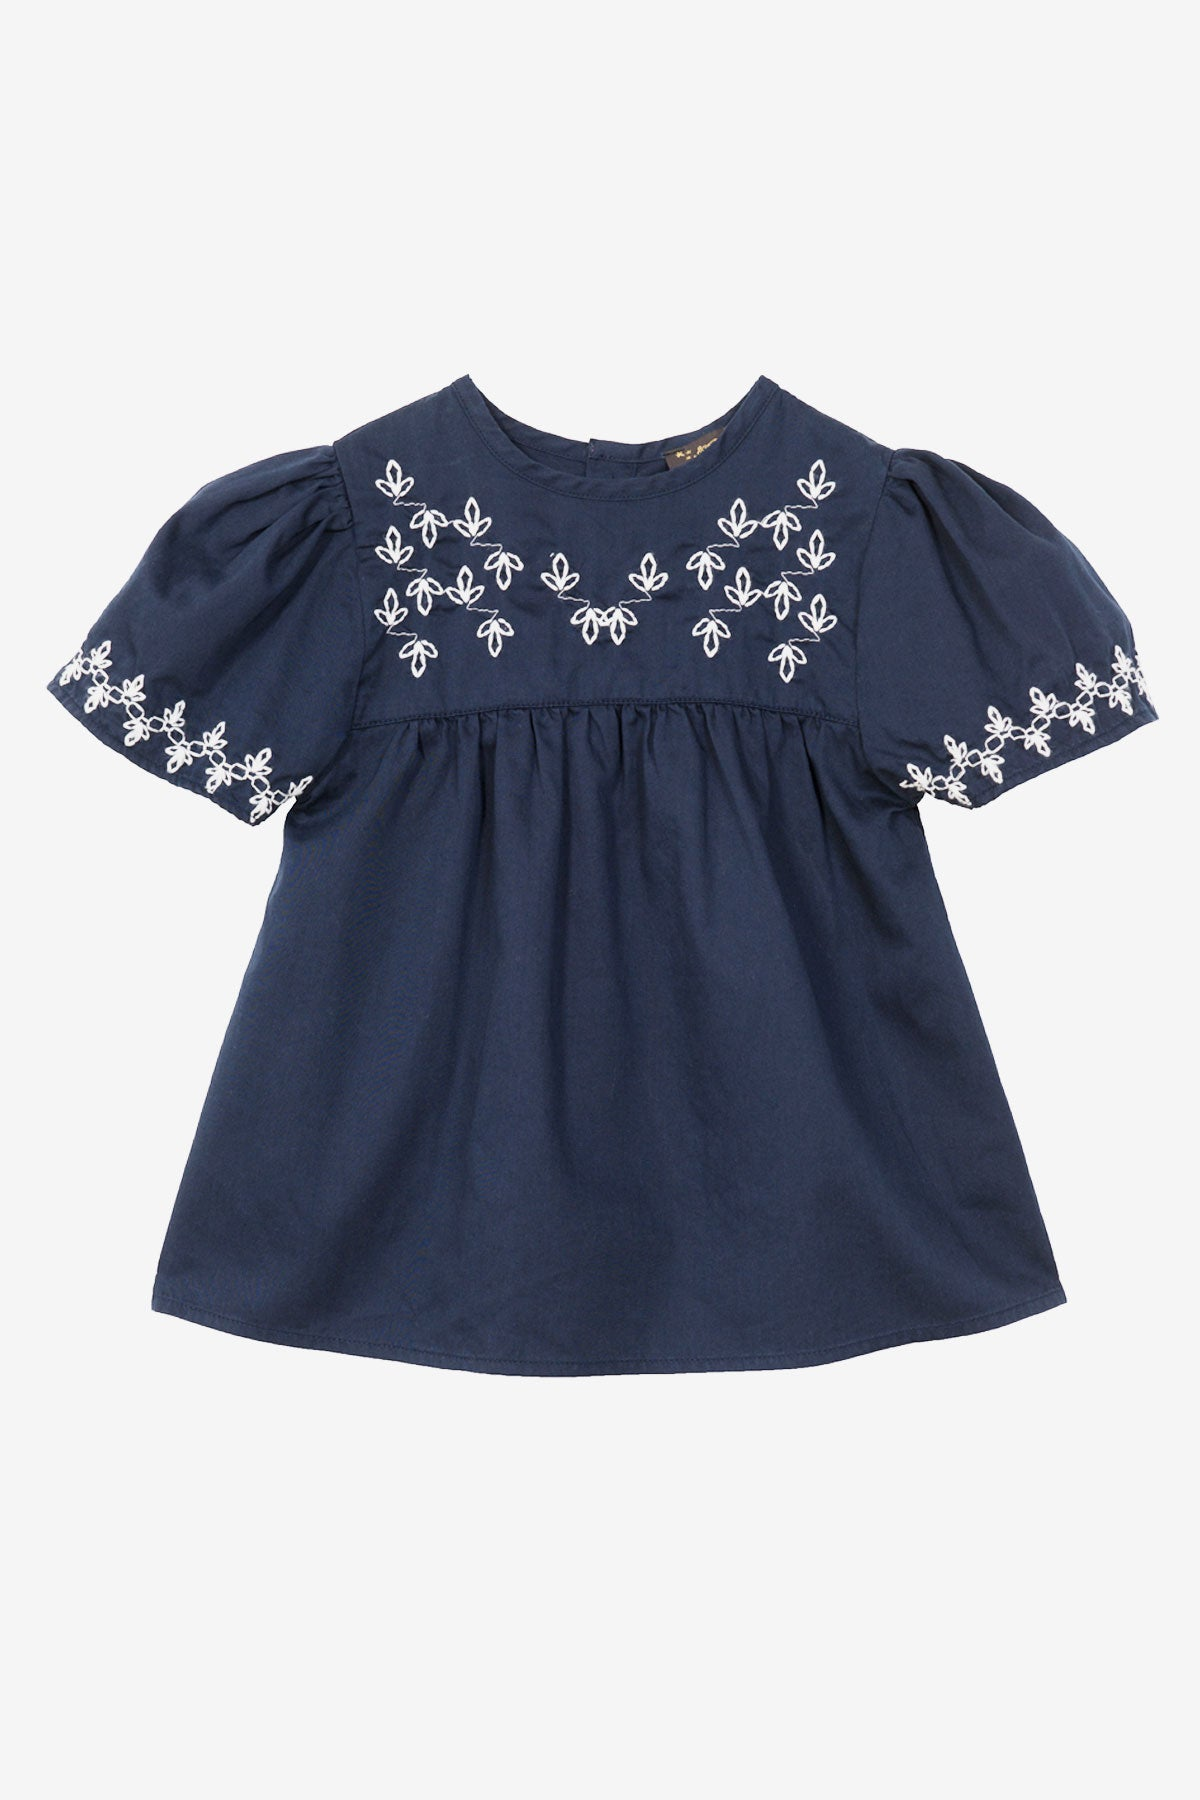 Velveteen Asha Girls Shirt